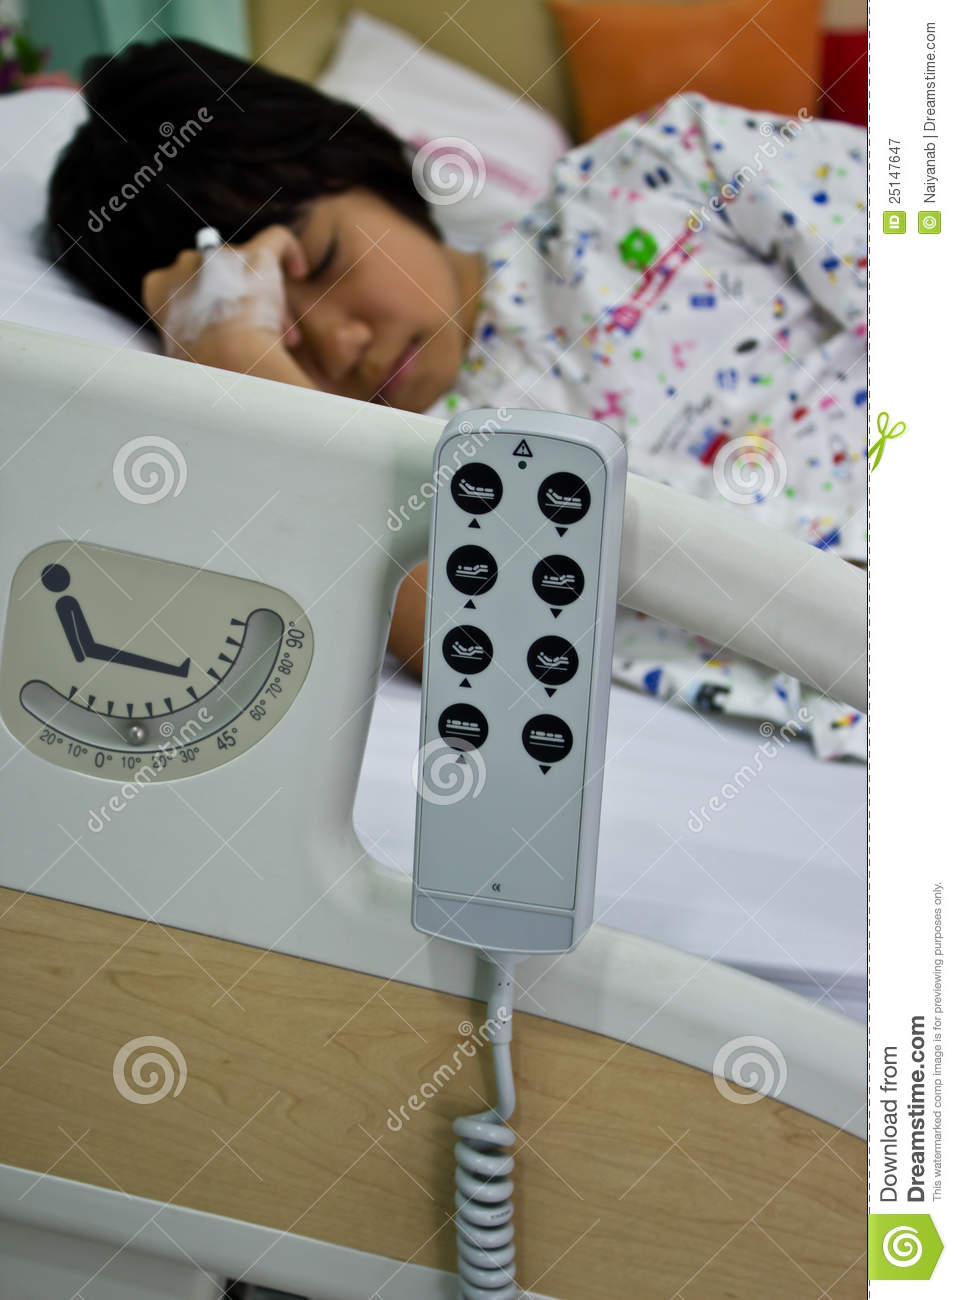 Remote Control Of Patient Bed Royalty Free Stock ...